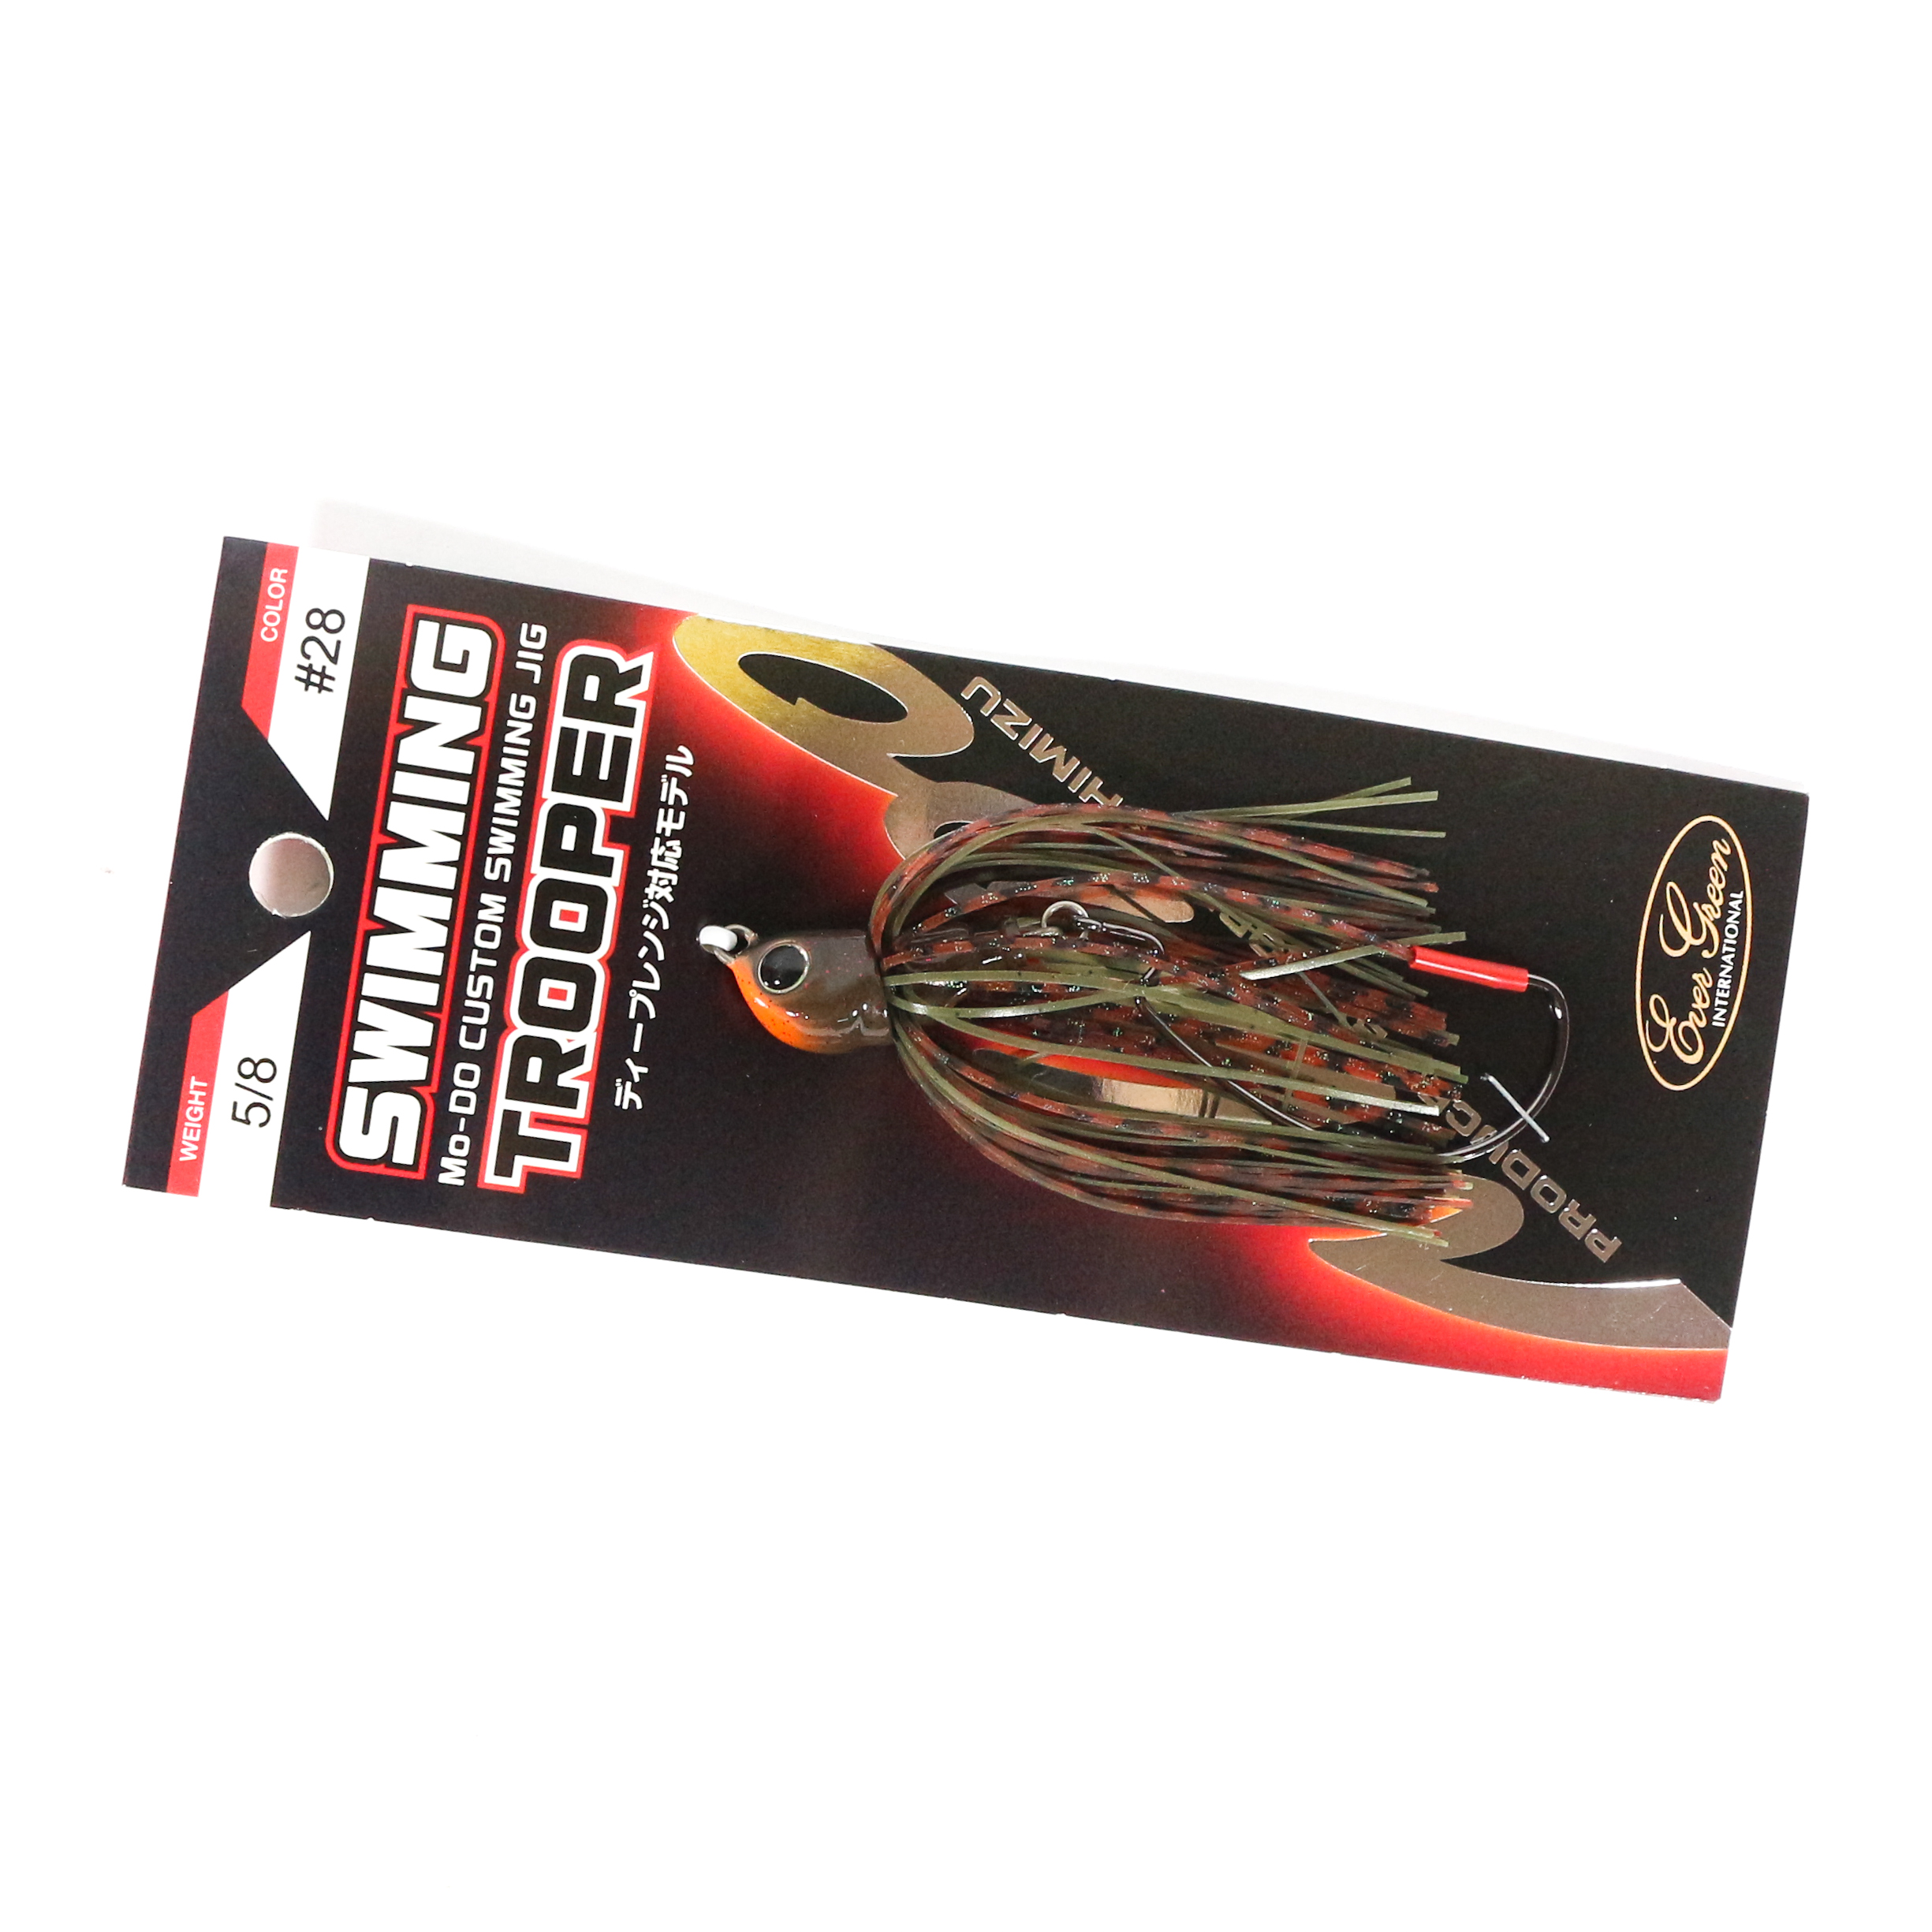 Evergreen Swimming Trooper Rubber Jig 5/8 oz Sinking Lure 28 (0300)